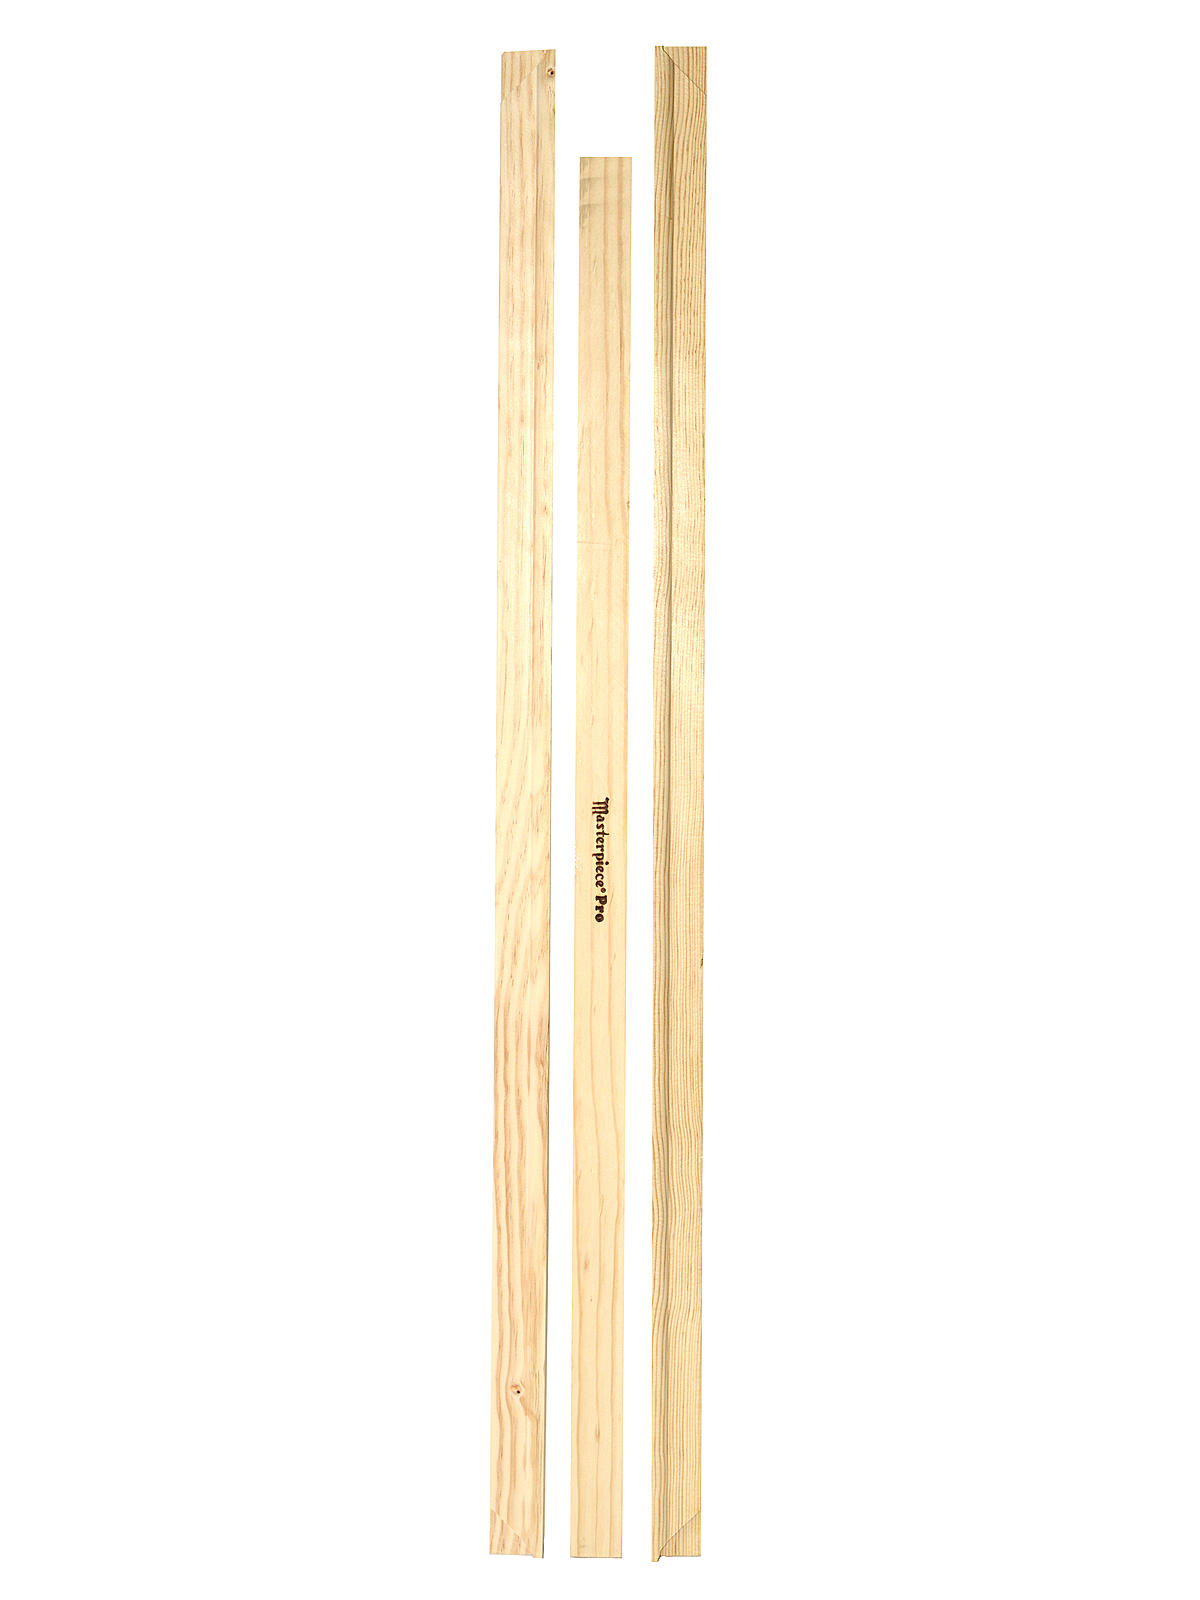 Vincent Pro Bar Stretcher Kits With Brace 35 In